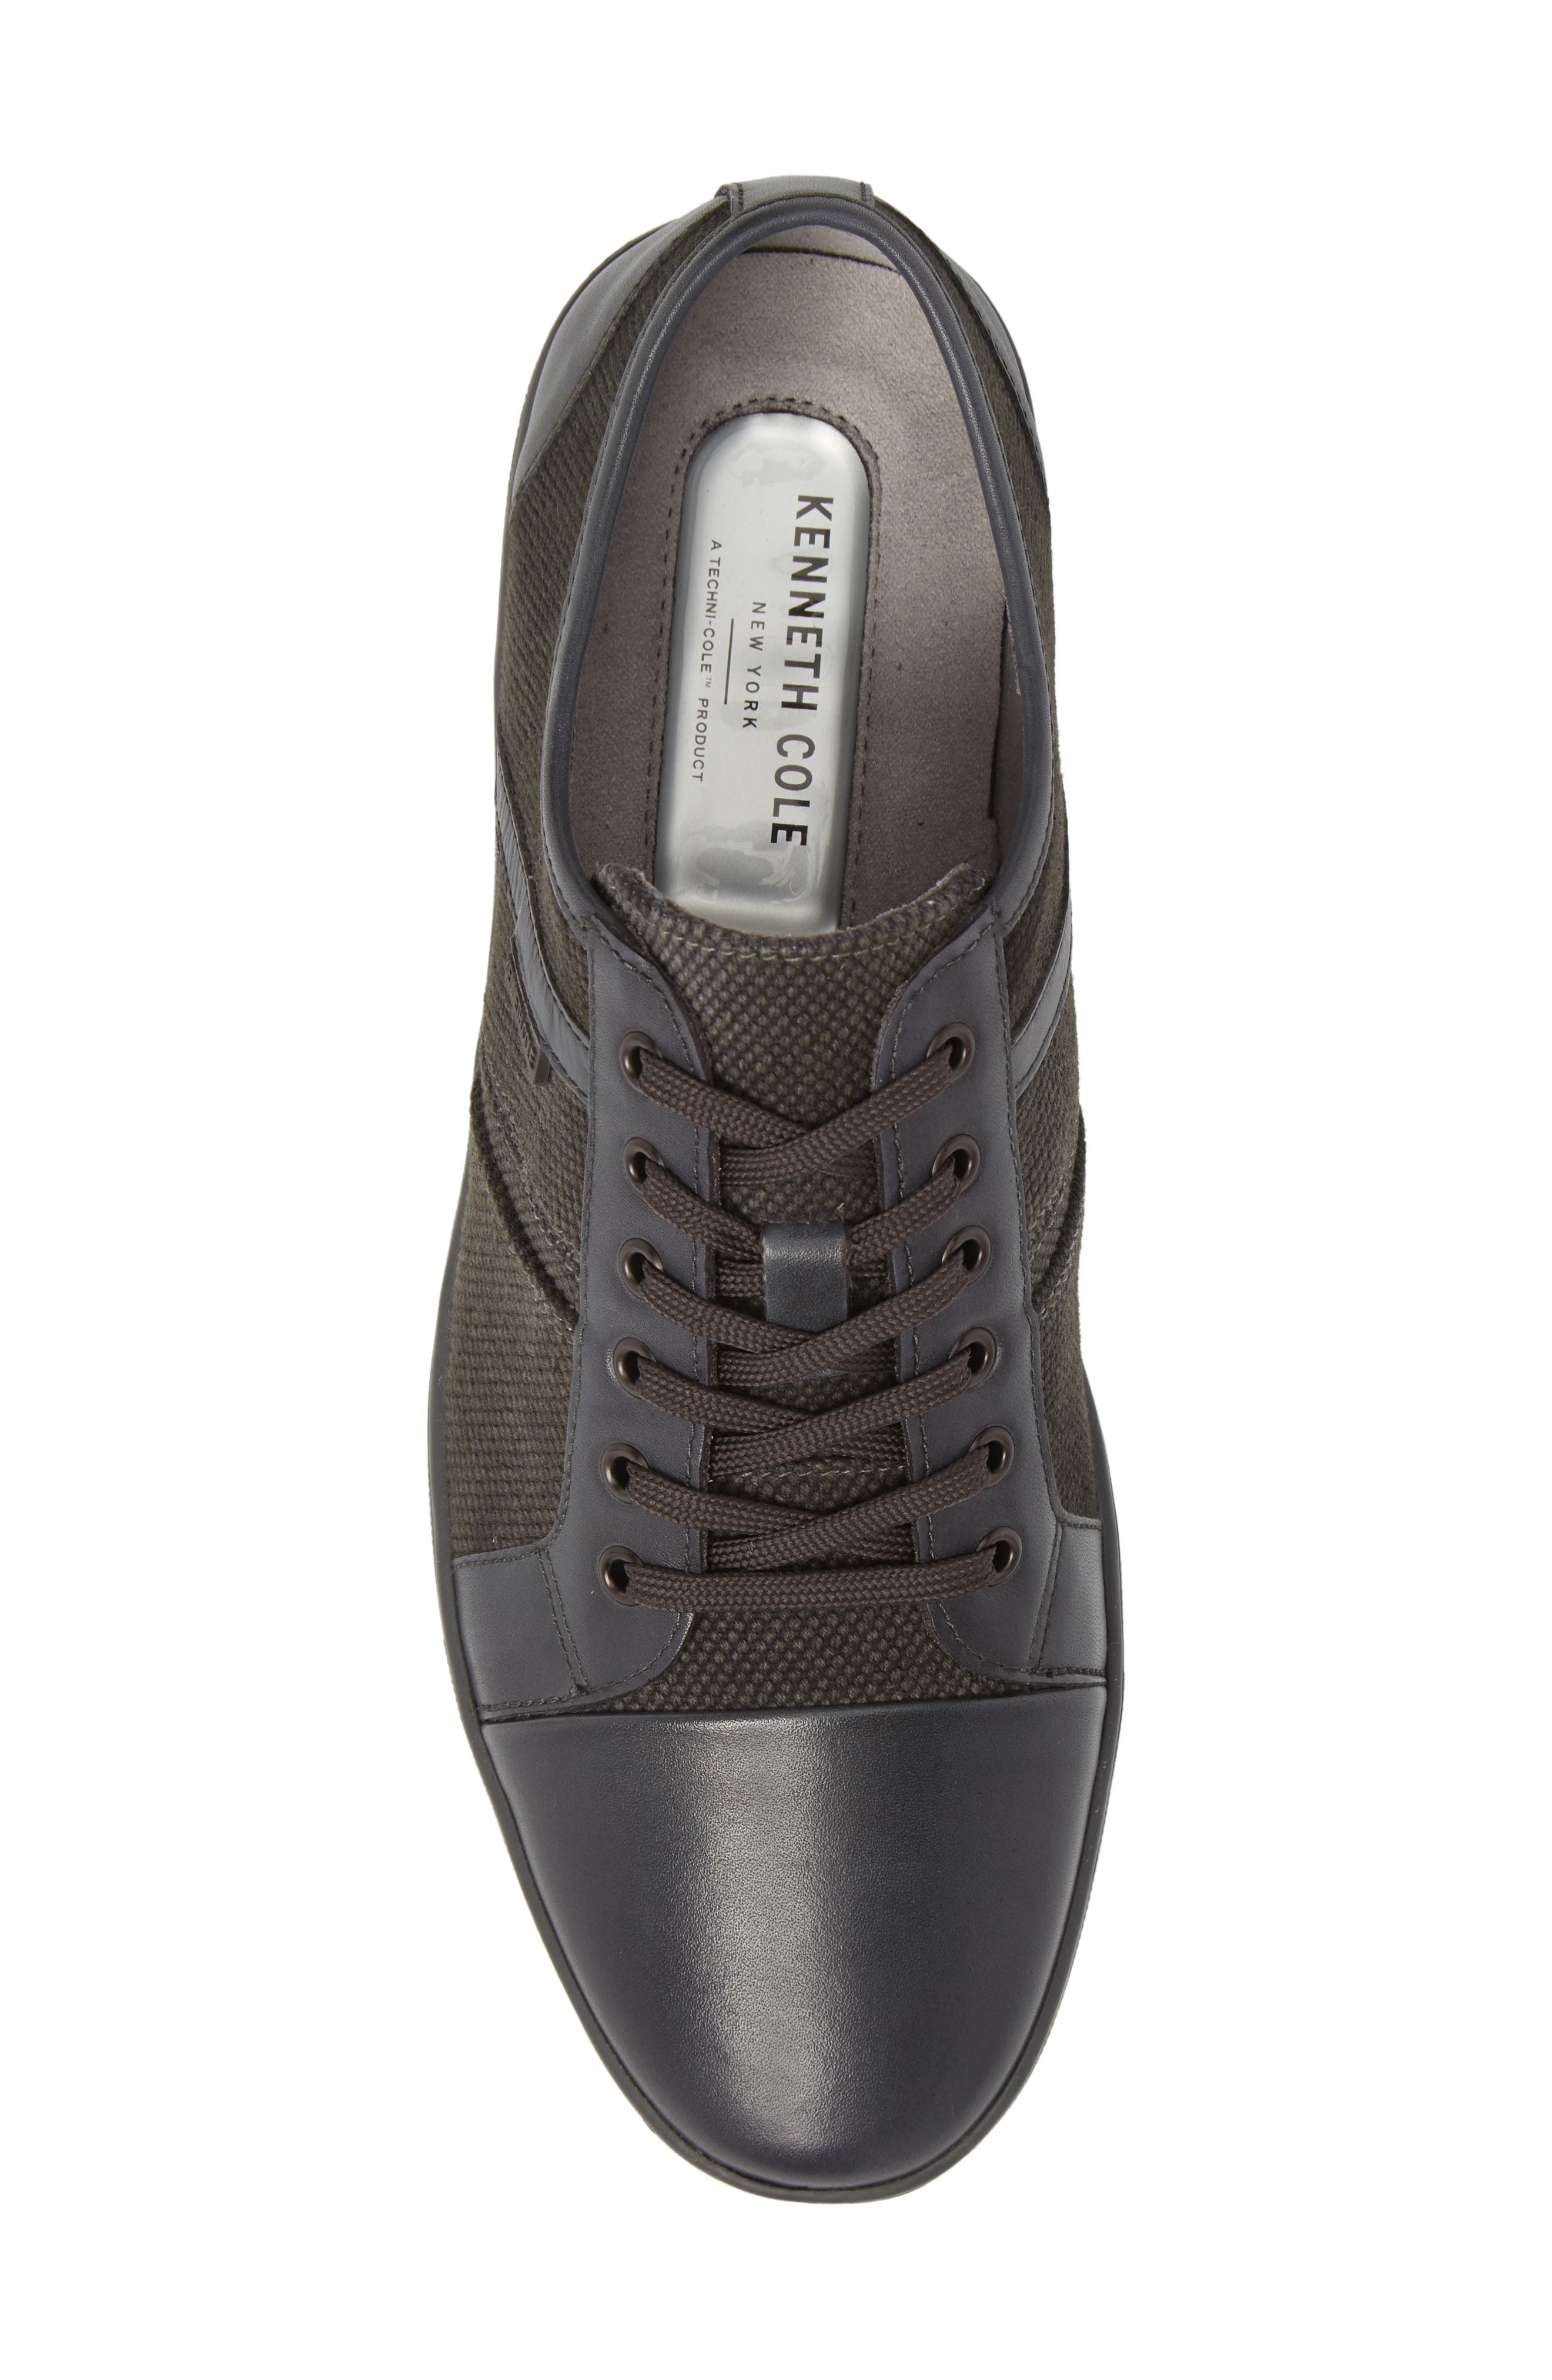 Initial Step Sneaker,                             Alternate thumbnail 5, color,                             Grey Leather/ Textile